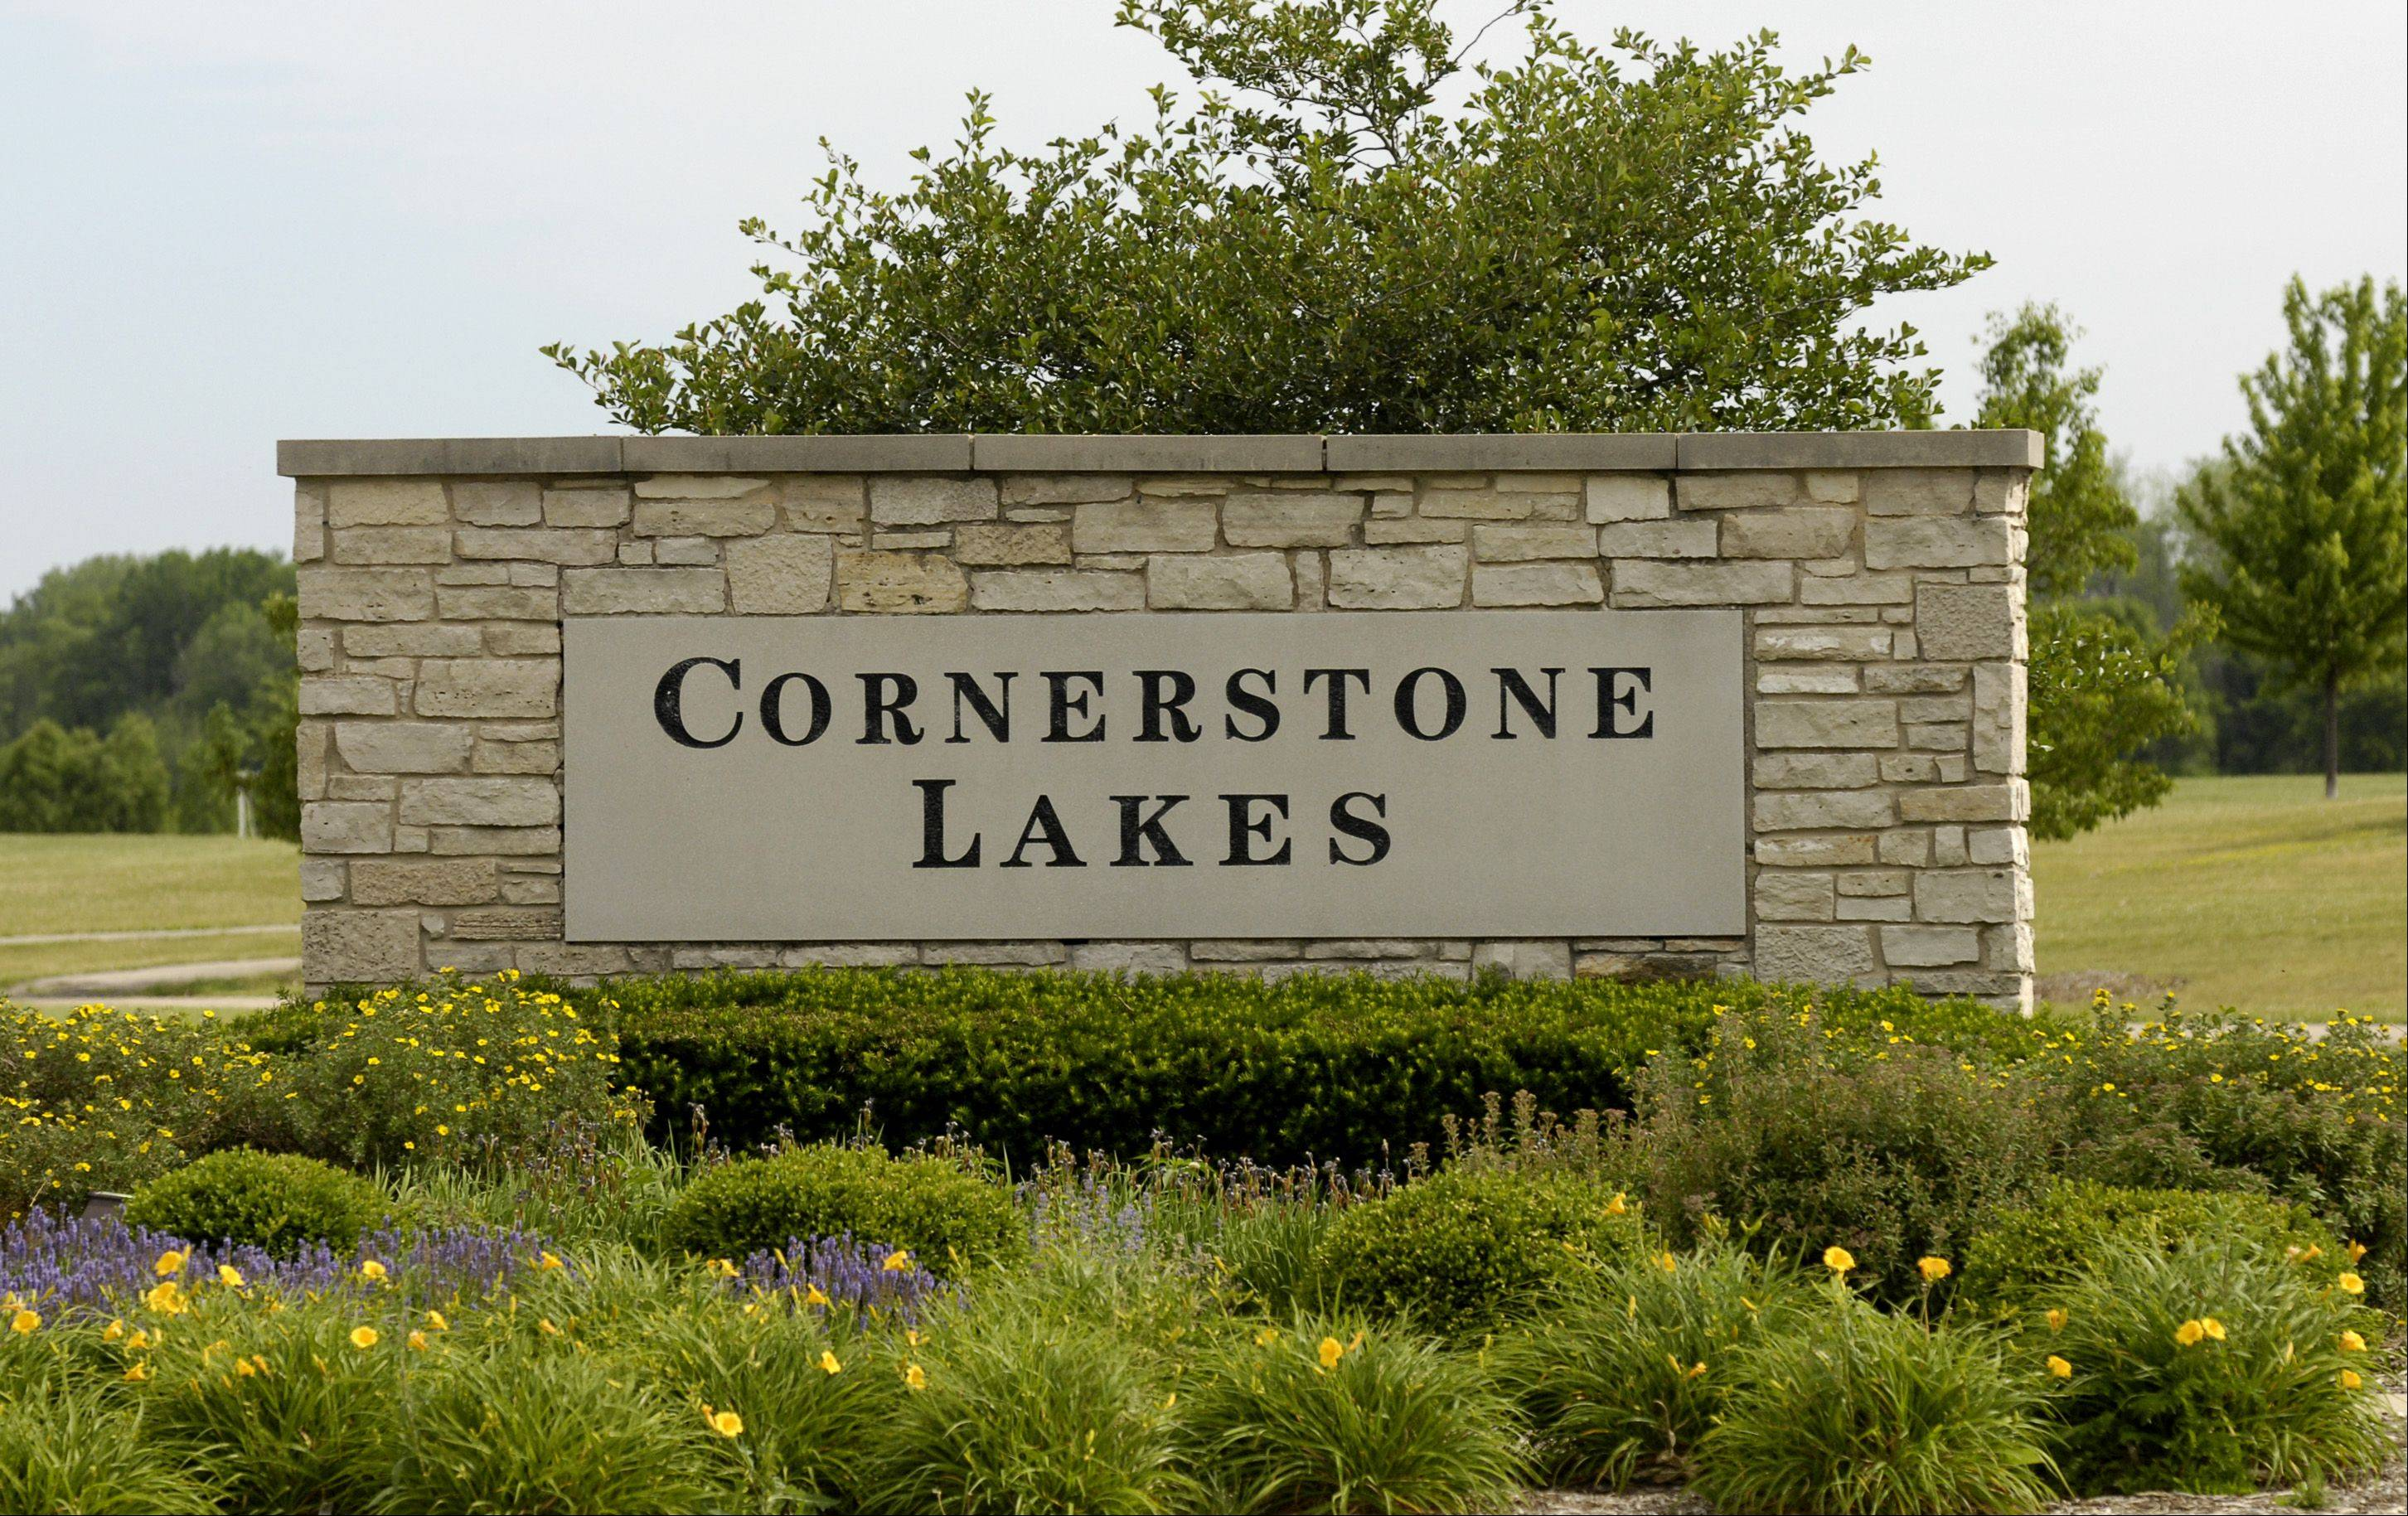 Homes in Cornerstone Lakes were built about 15 years ago. While in West Chicago, the subdivision's children attend St. Charles schools.